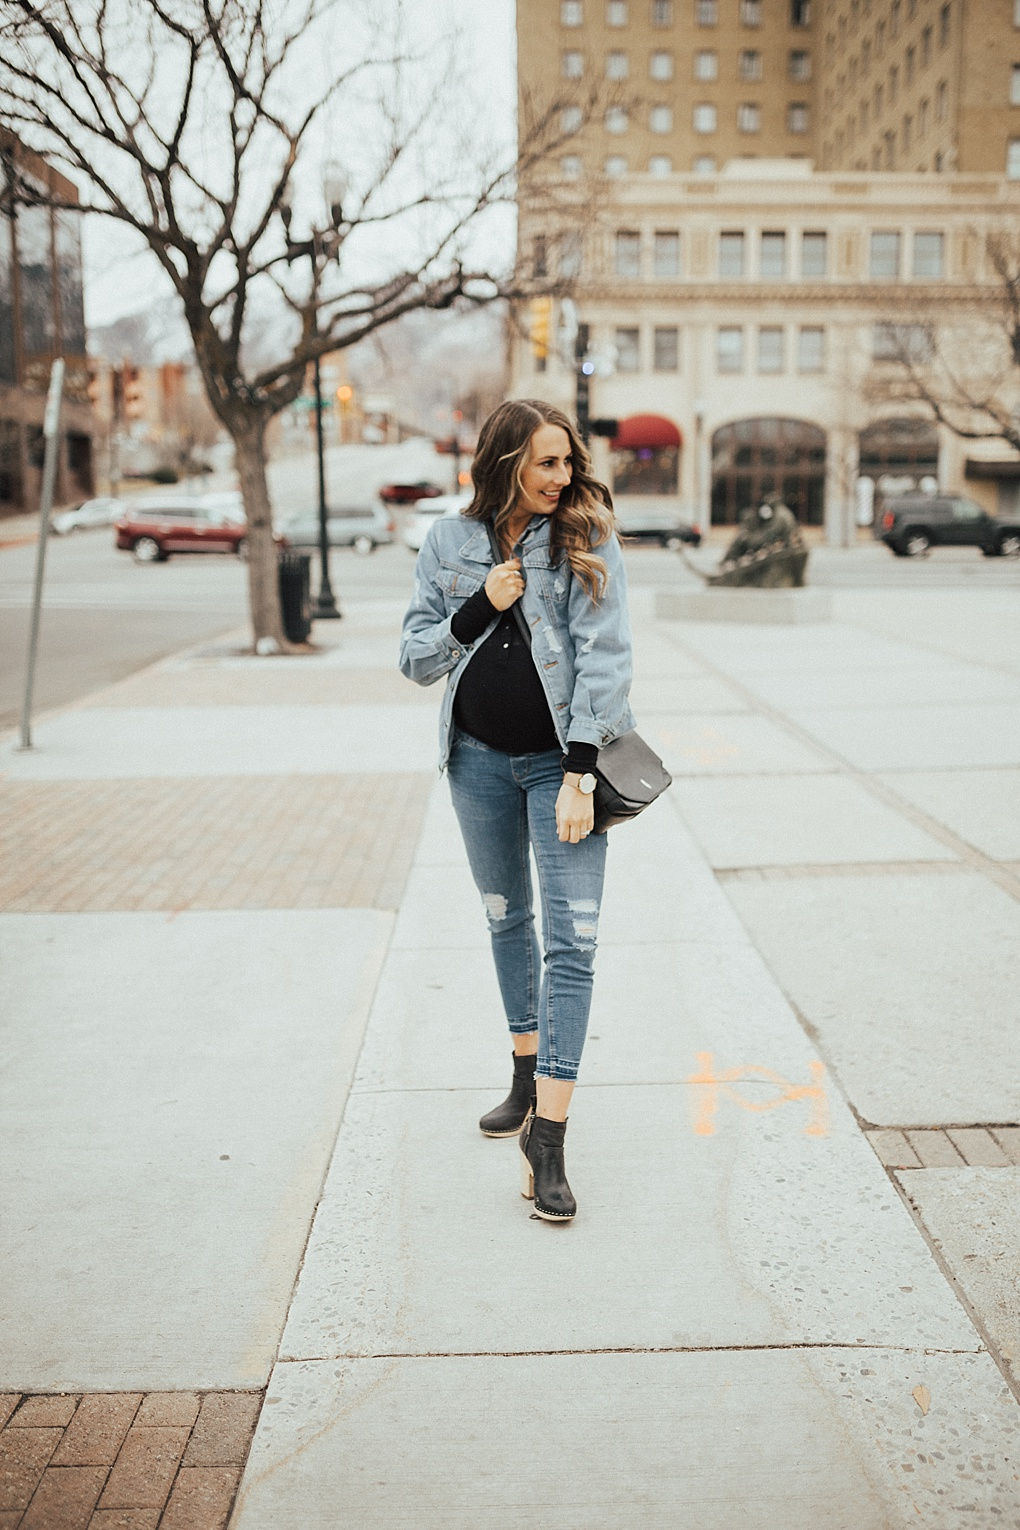 Ladies, are you loving the oversized jacket trend, but unsure on how to style it? Bookmark this ASAP to learn all the tips on mastering the oversized jacket trend.